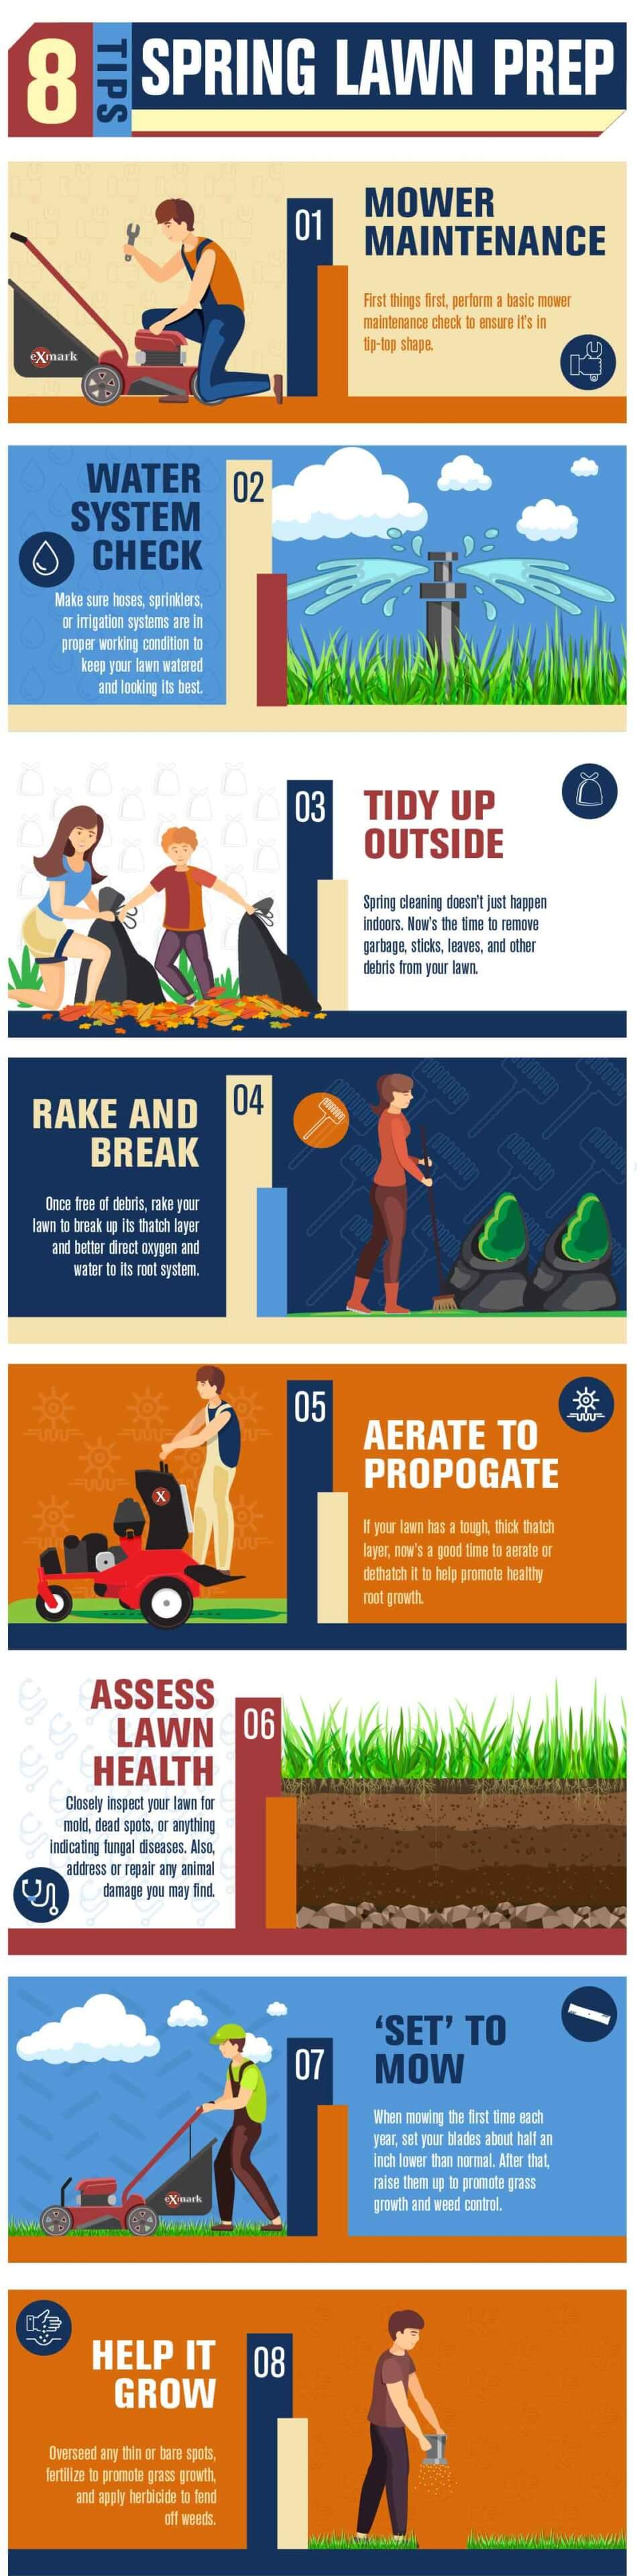 Spring Lawn Preparation Infographic